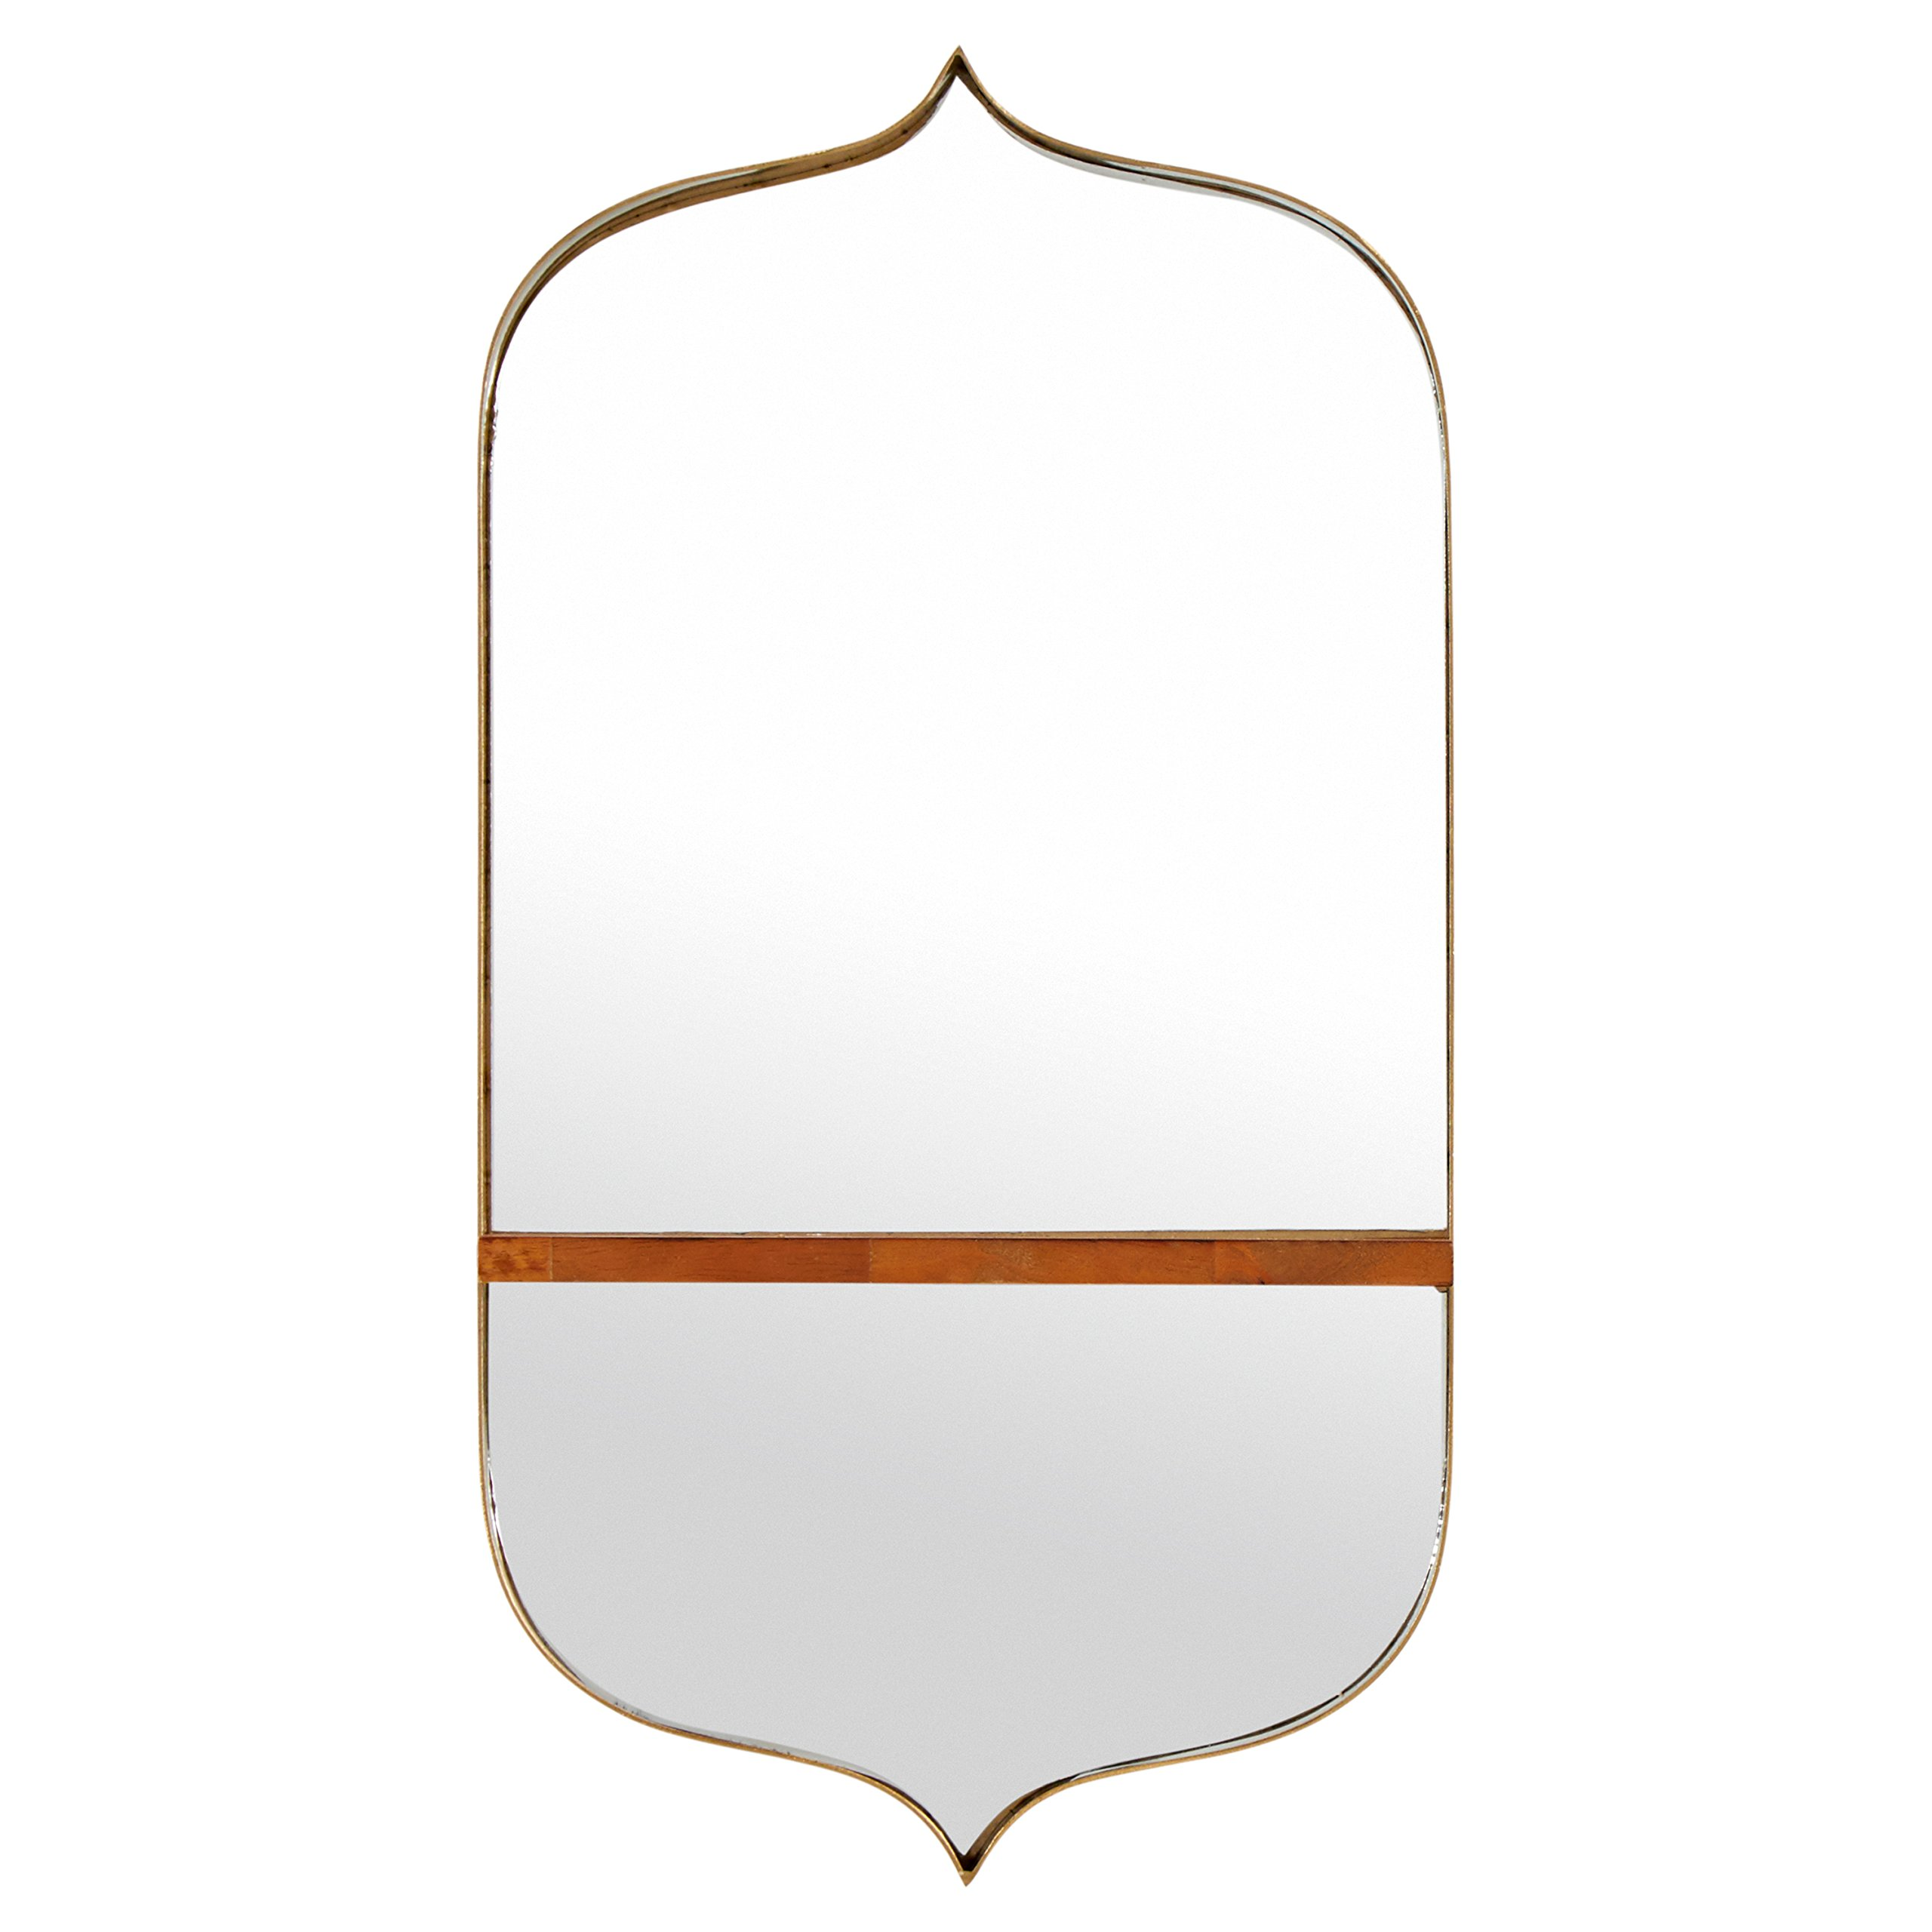 Rivet Modern Curved Iron Mirror with Wood Shelf, 24''H, Gold Finish